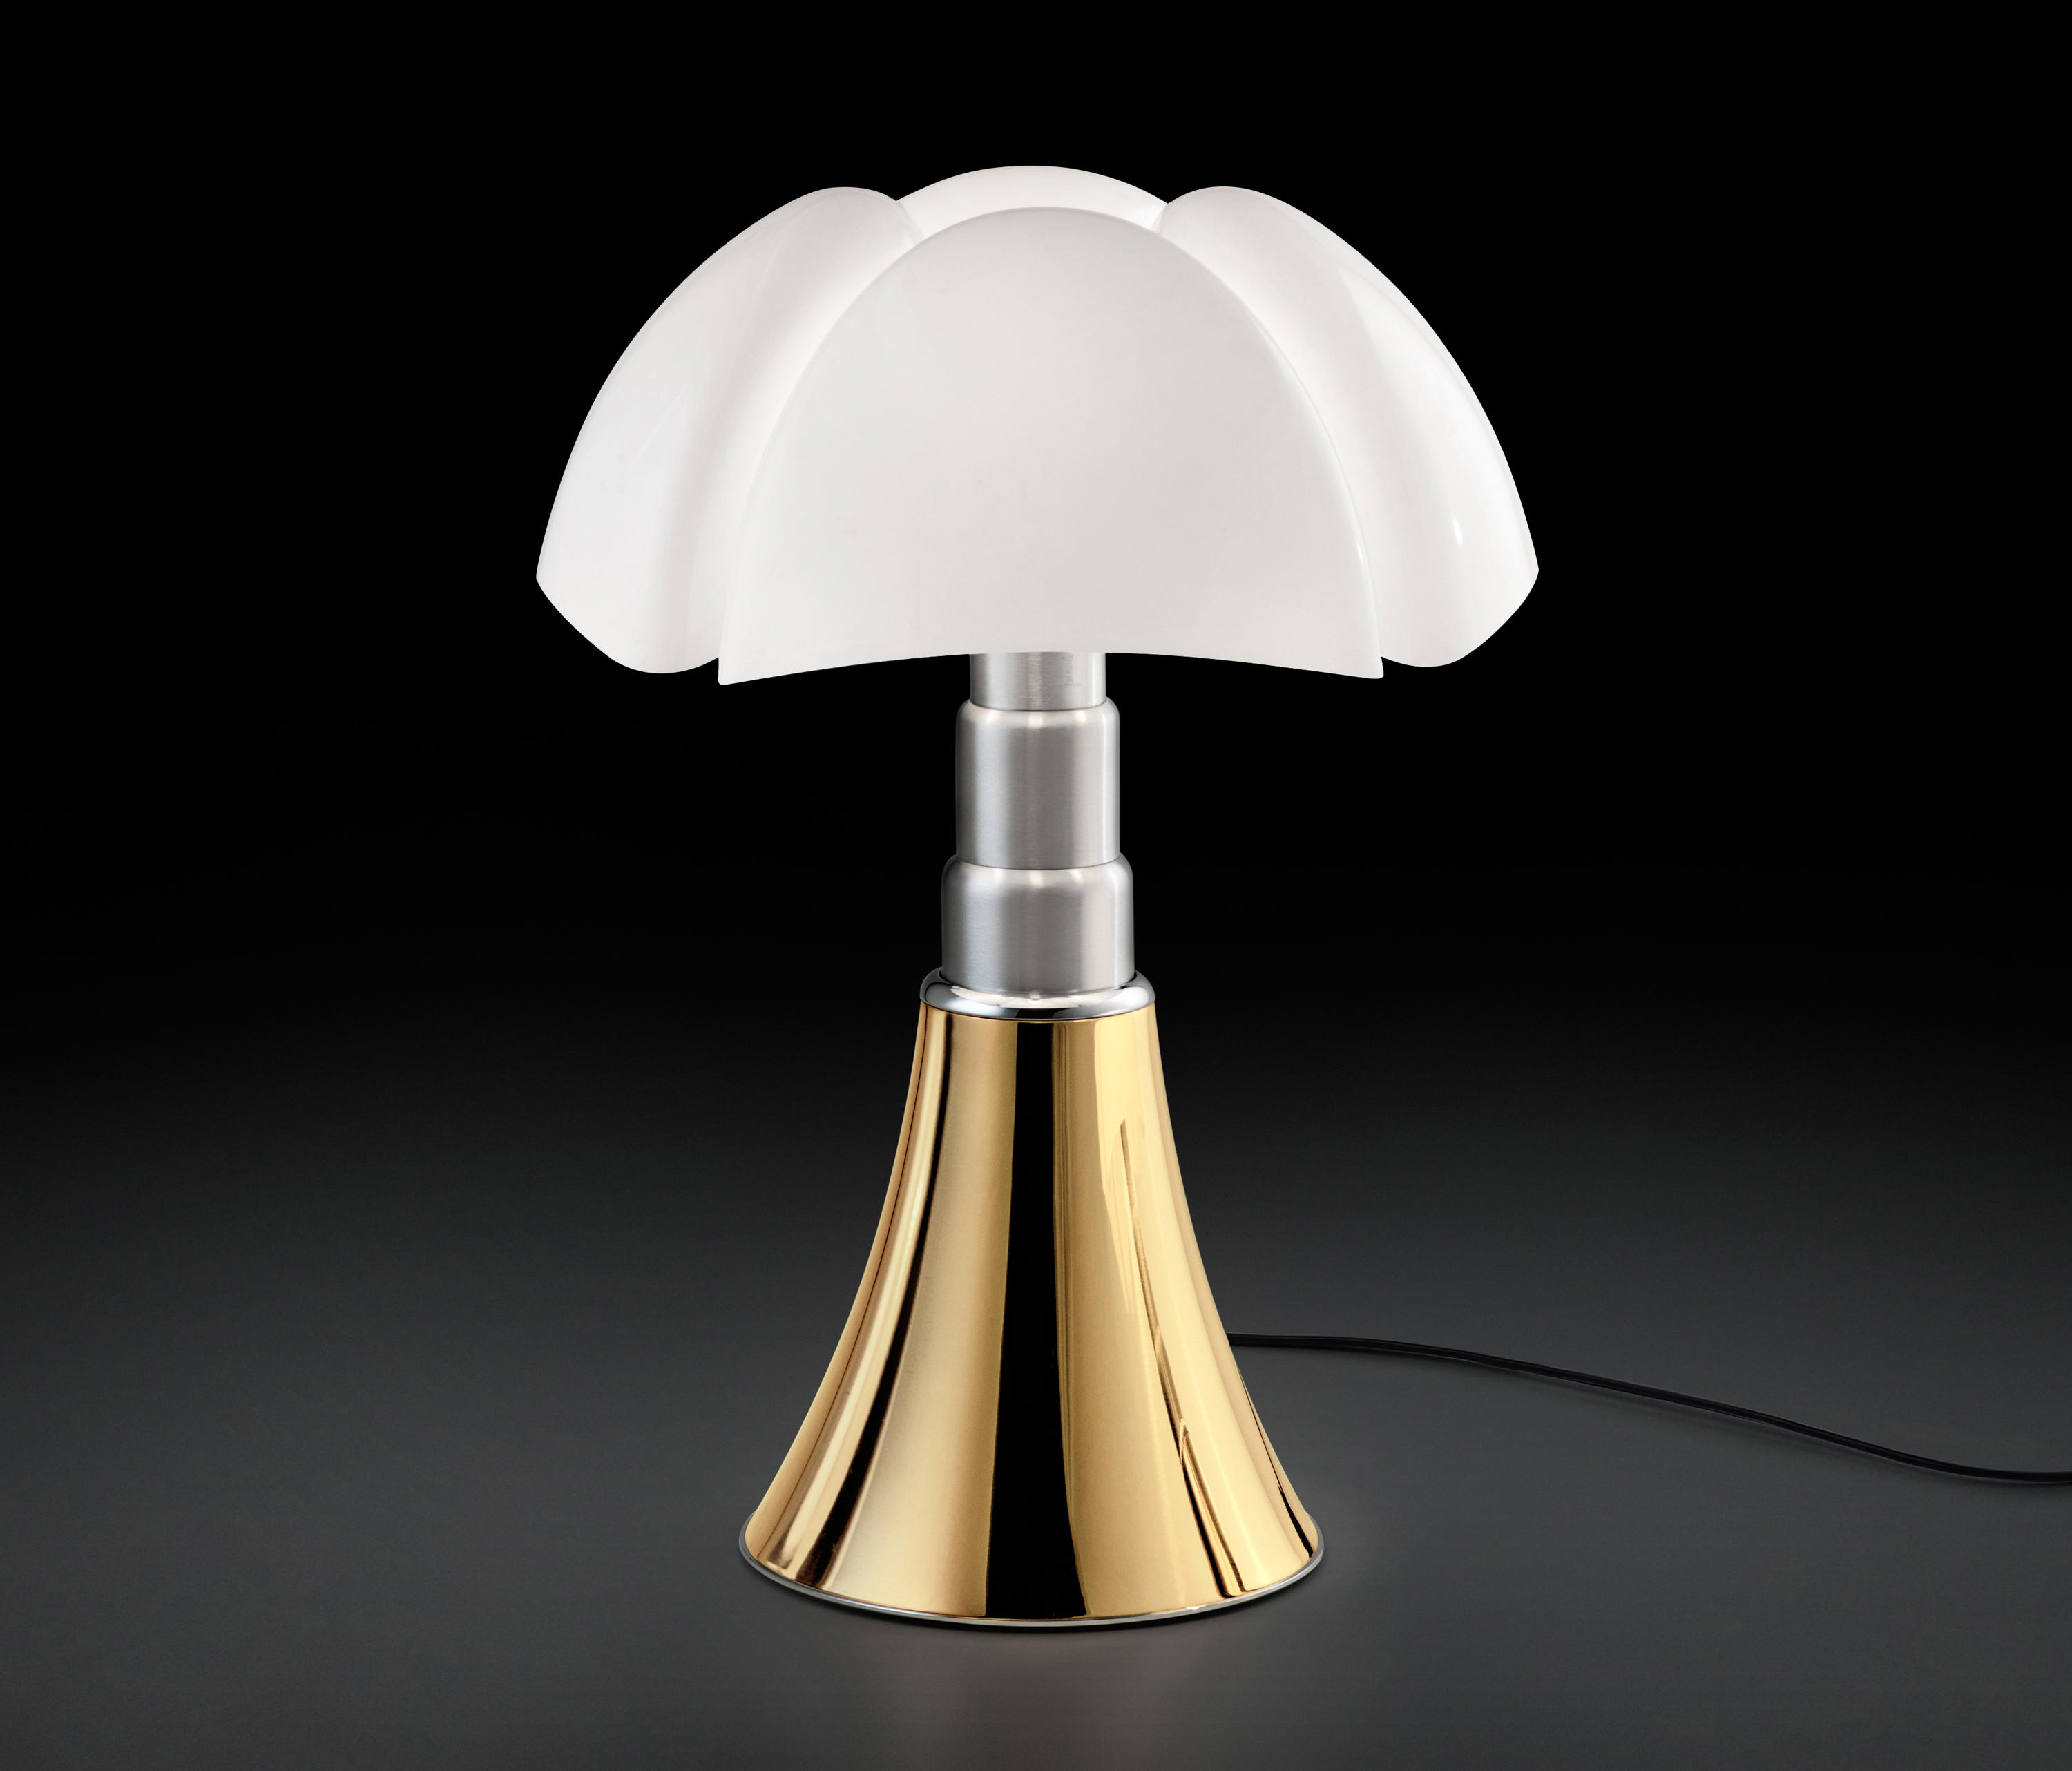 pipistrello 50 anni golden general lighting from martinelli luce architonic. Black Bedroom Furniture Sets. Home Design Ideas